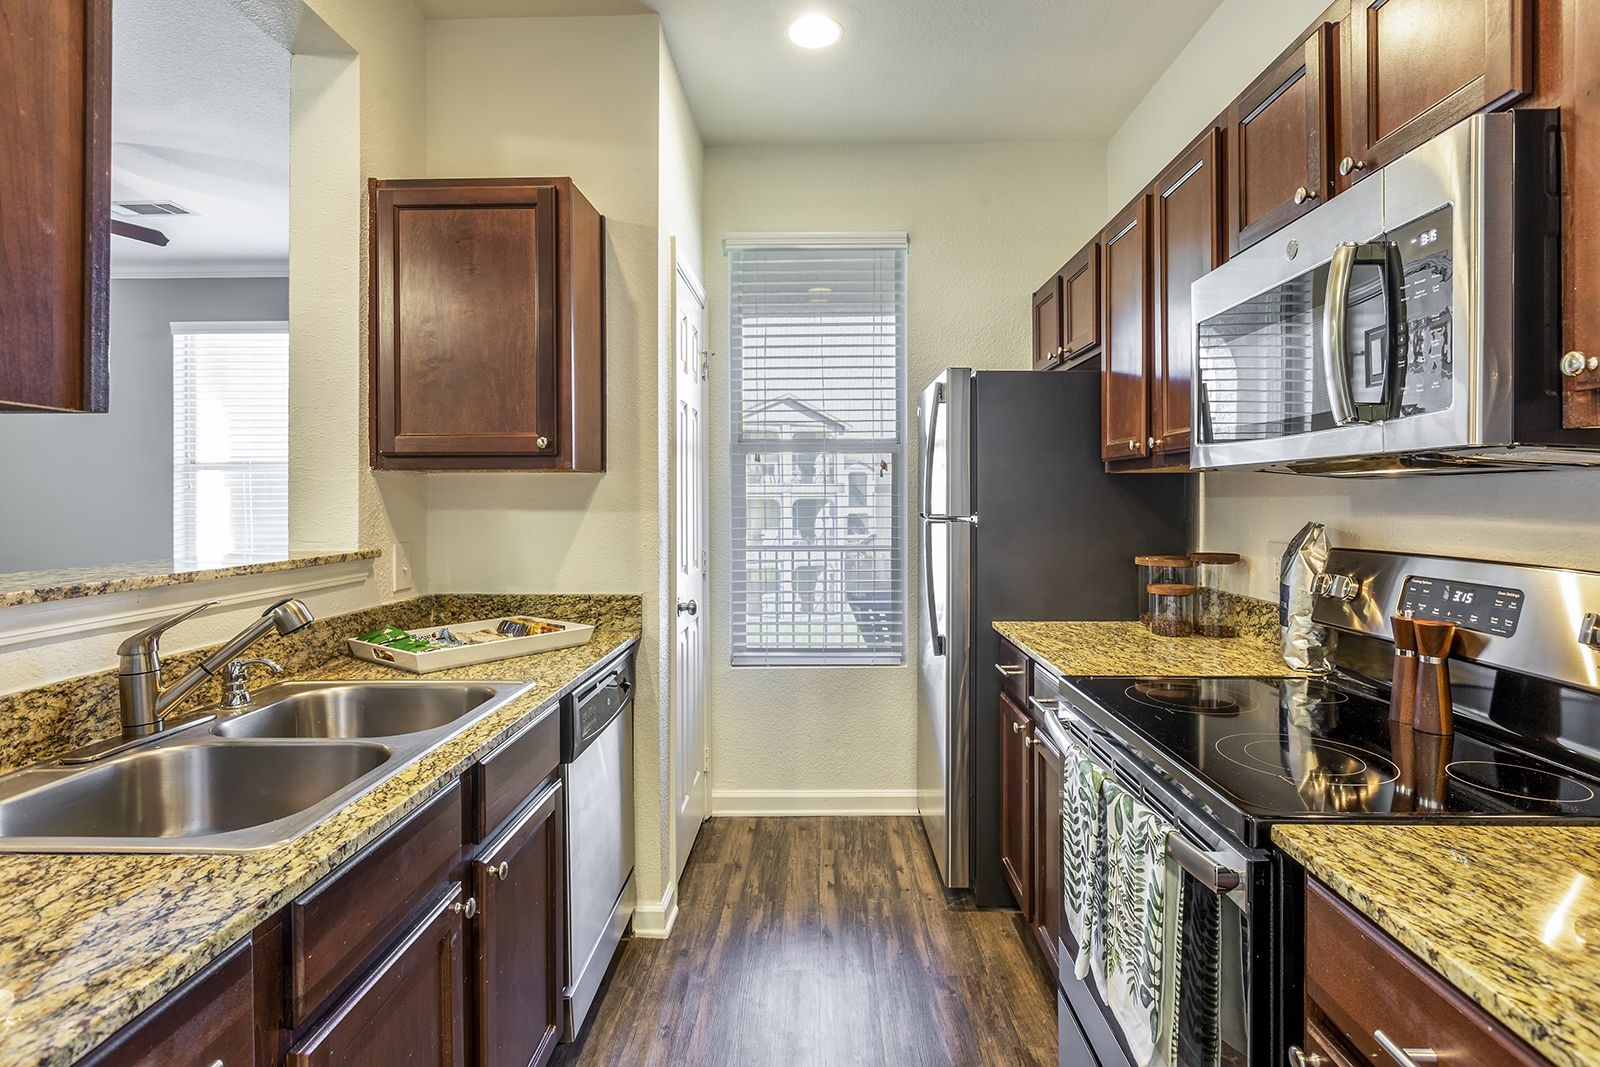 Our Renovated Apartment Homes Feature Air Conditioning Stainless Steel Appliances Granite Countertops And Hardwood Flooring Renting A House Apartment Home